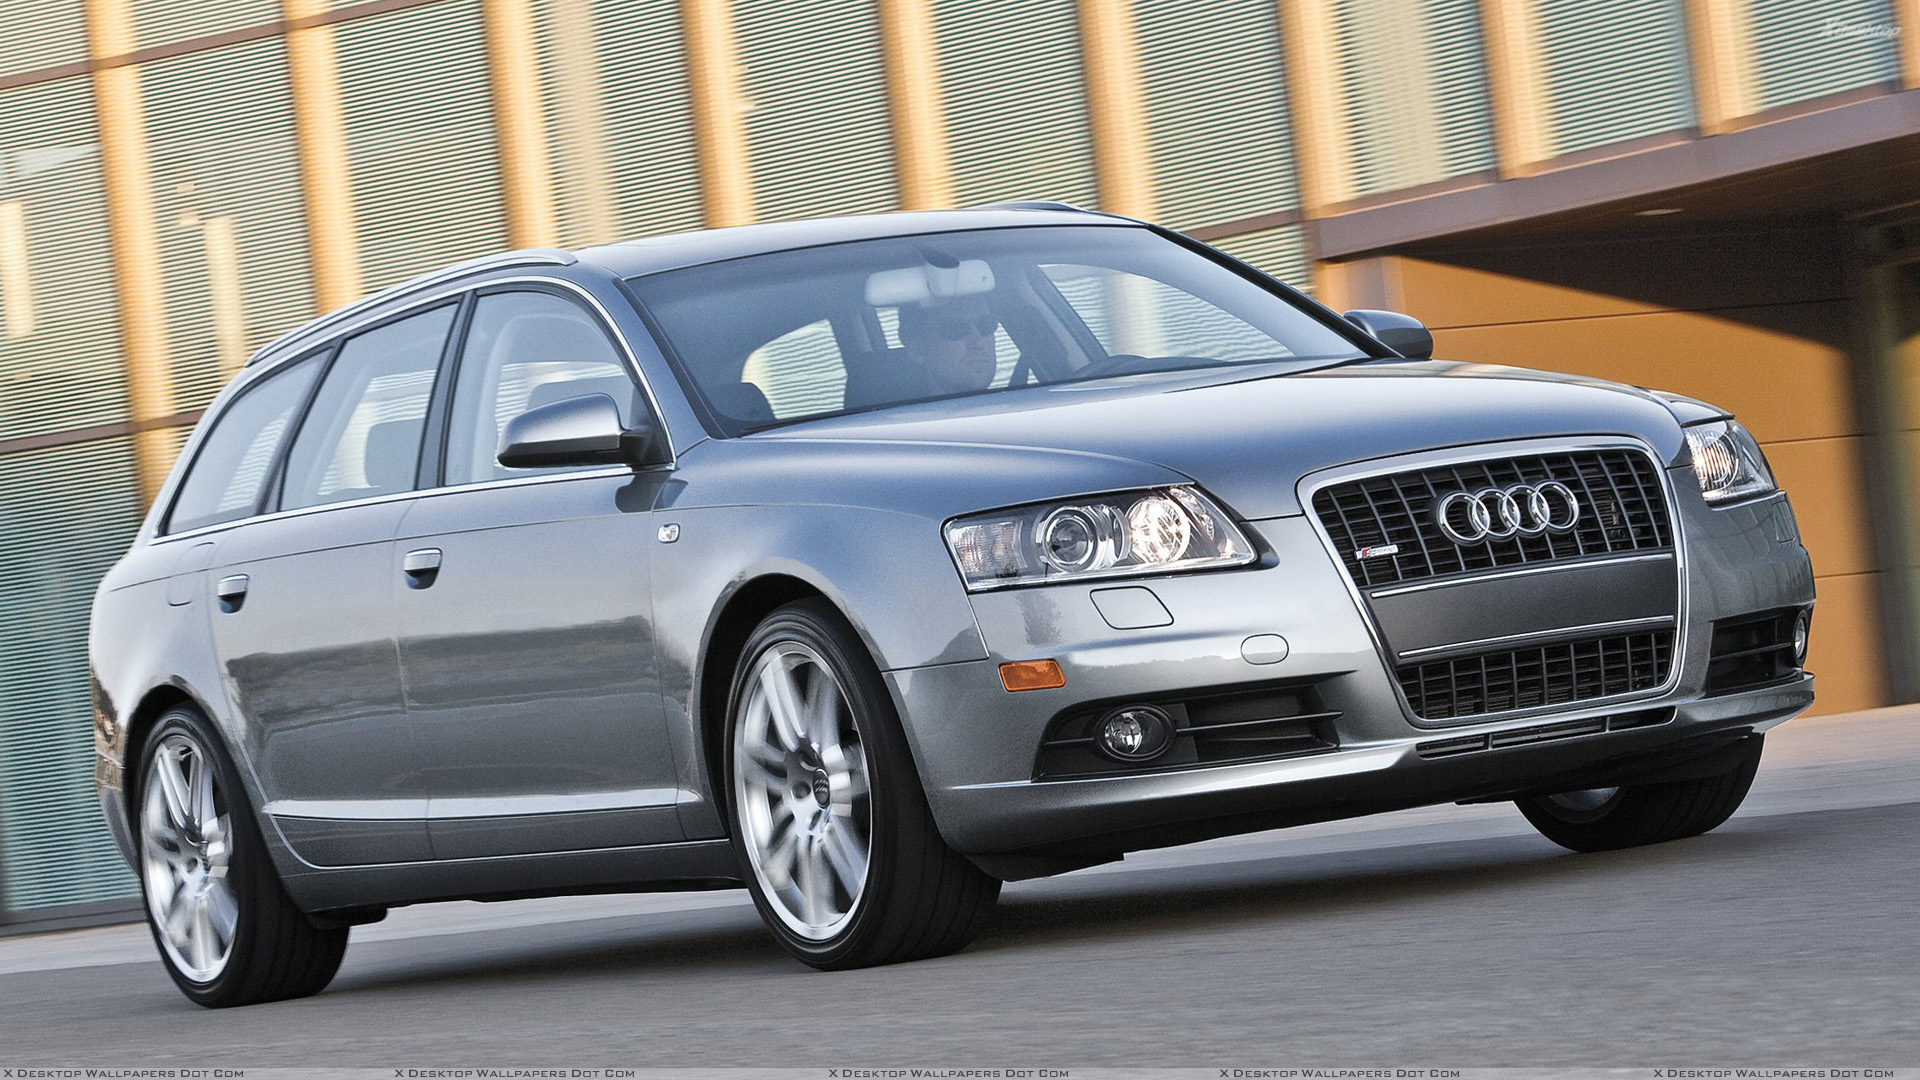 Running Audi A6 Avant S Line In Grey Front Pose Wallpaper Wallpaper